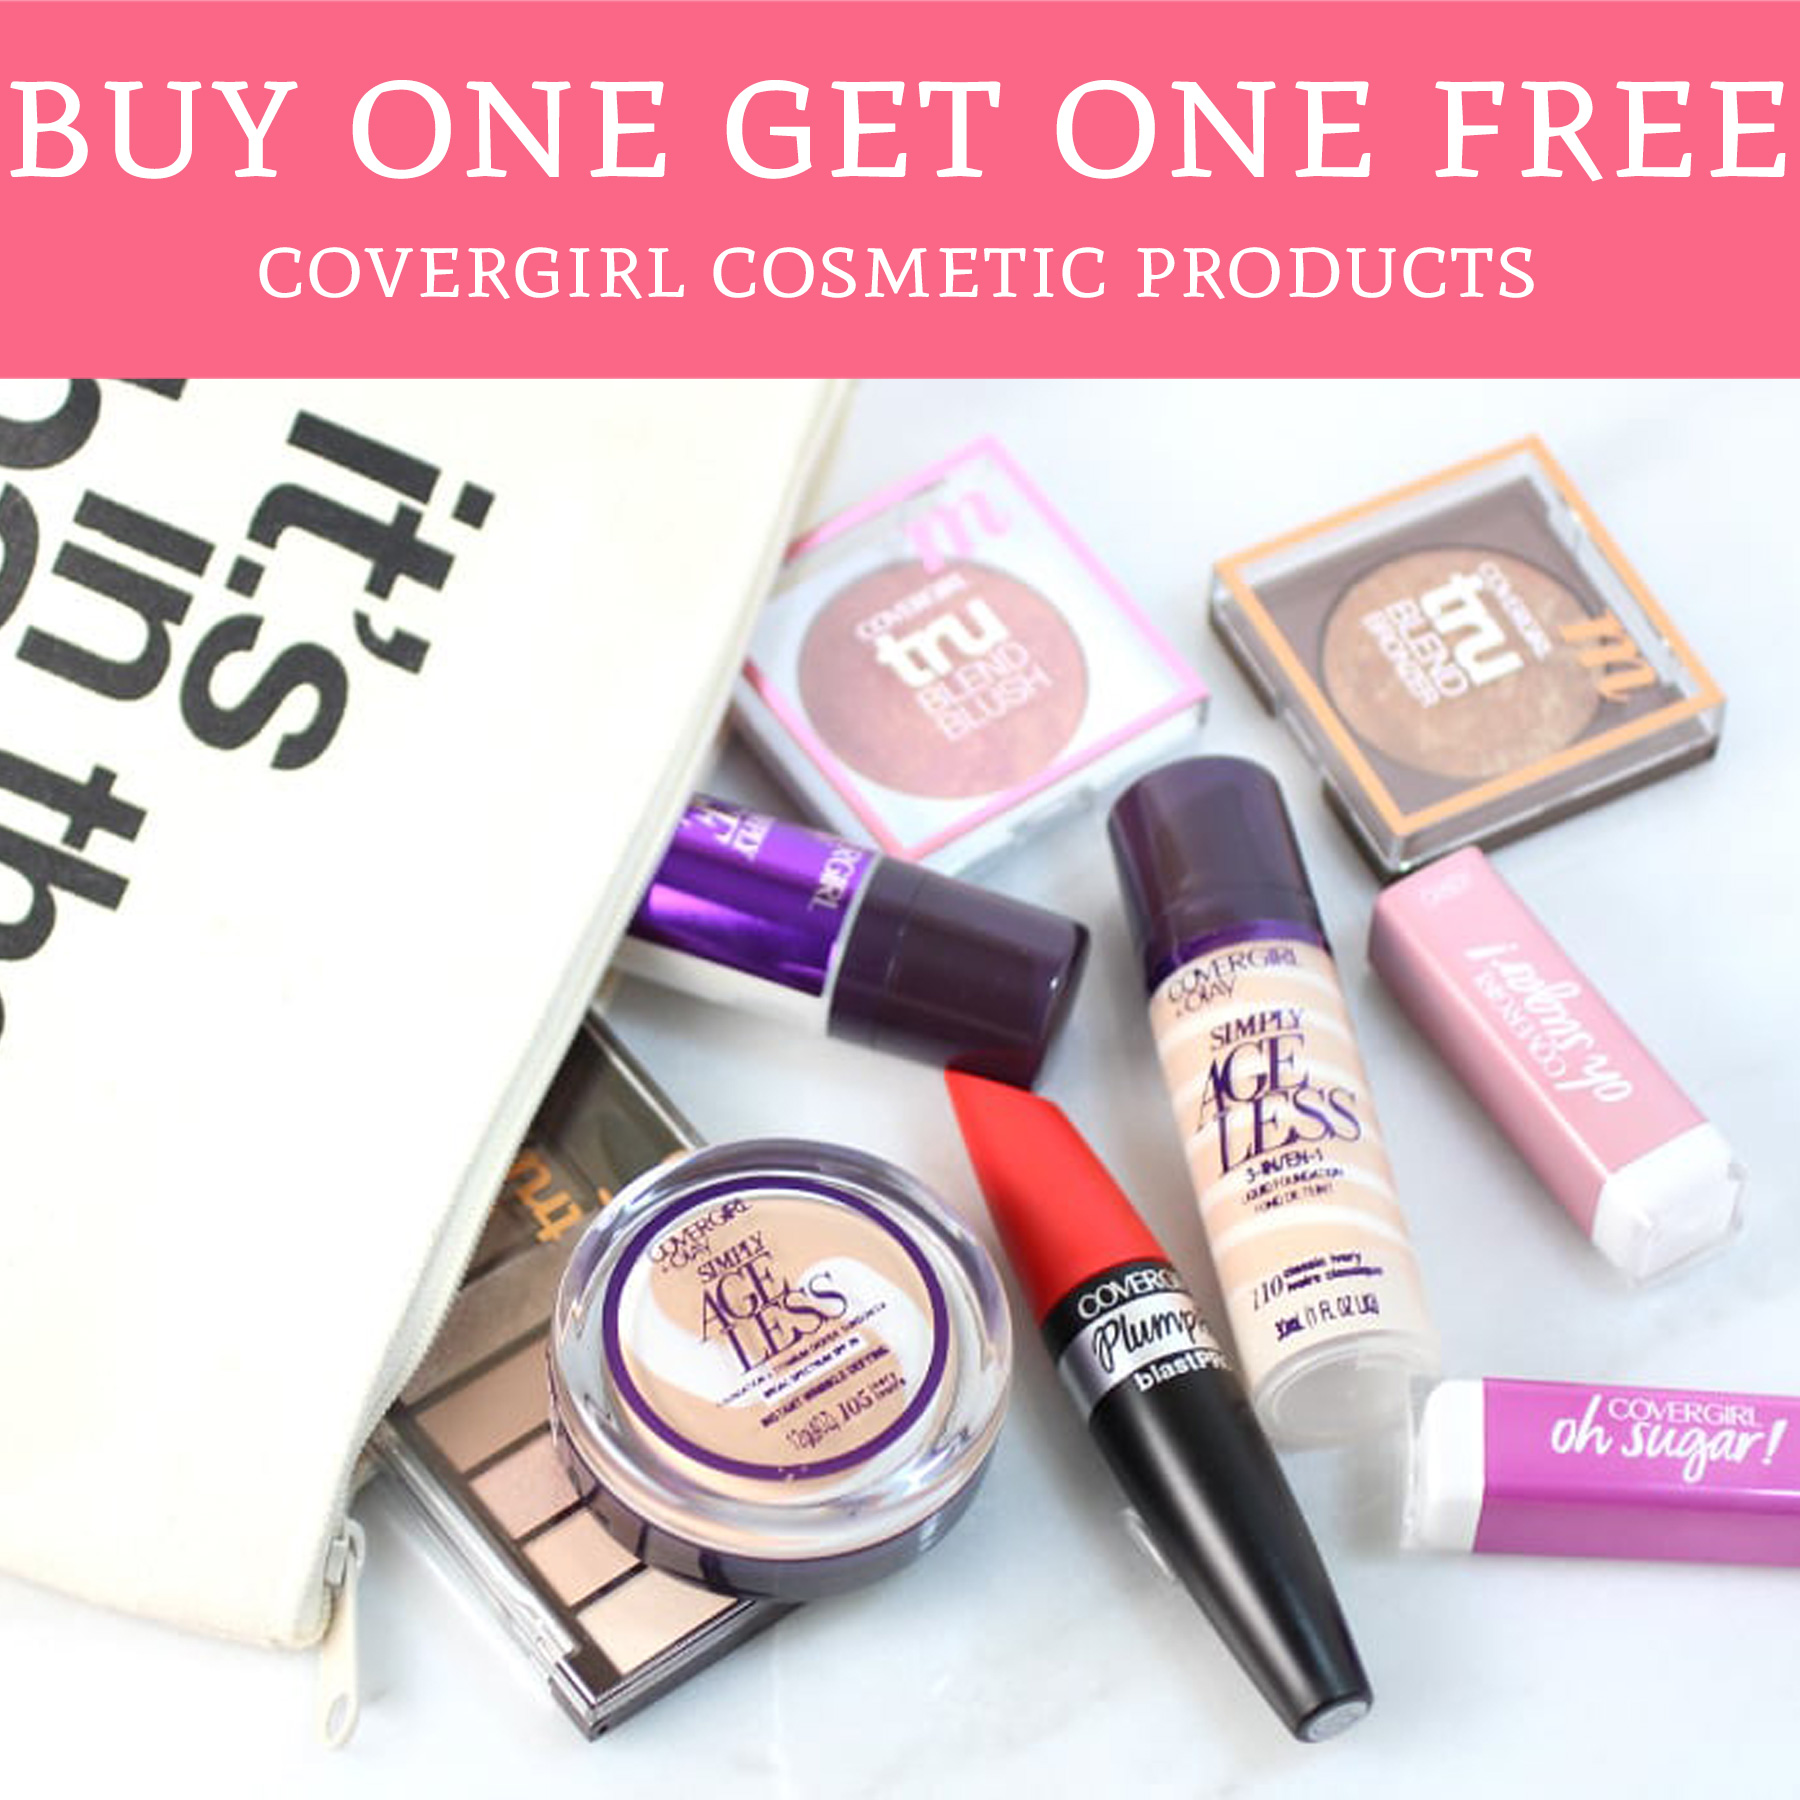 Free Covergirl Cosmetic Products